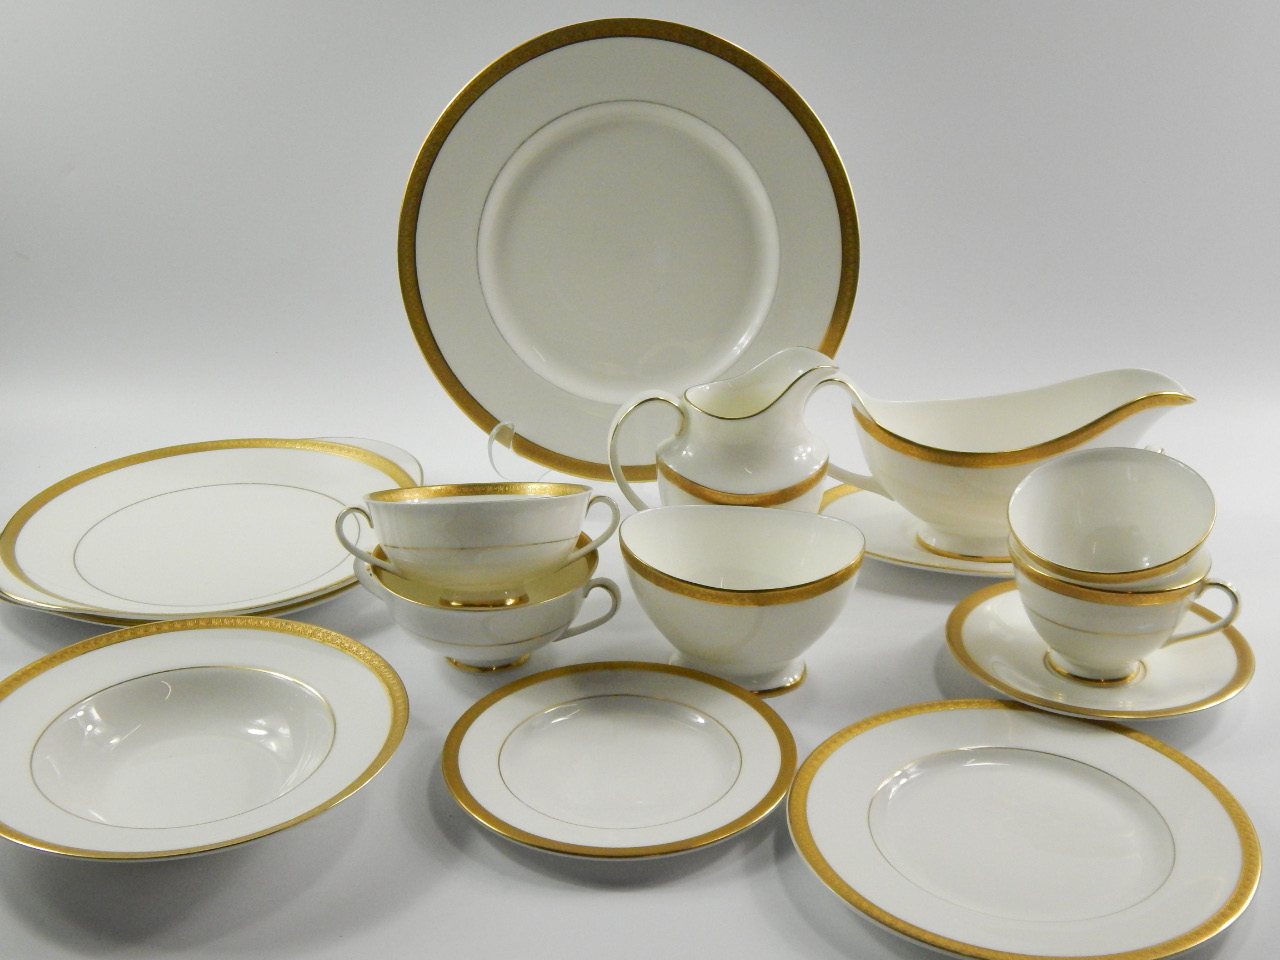 A Royal Doulton porcelain part dinner and